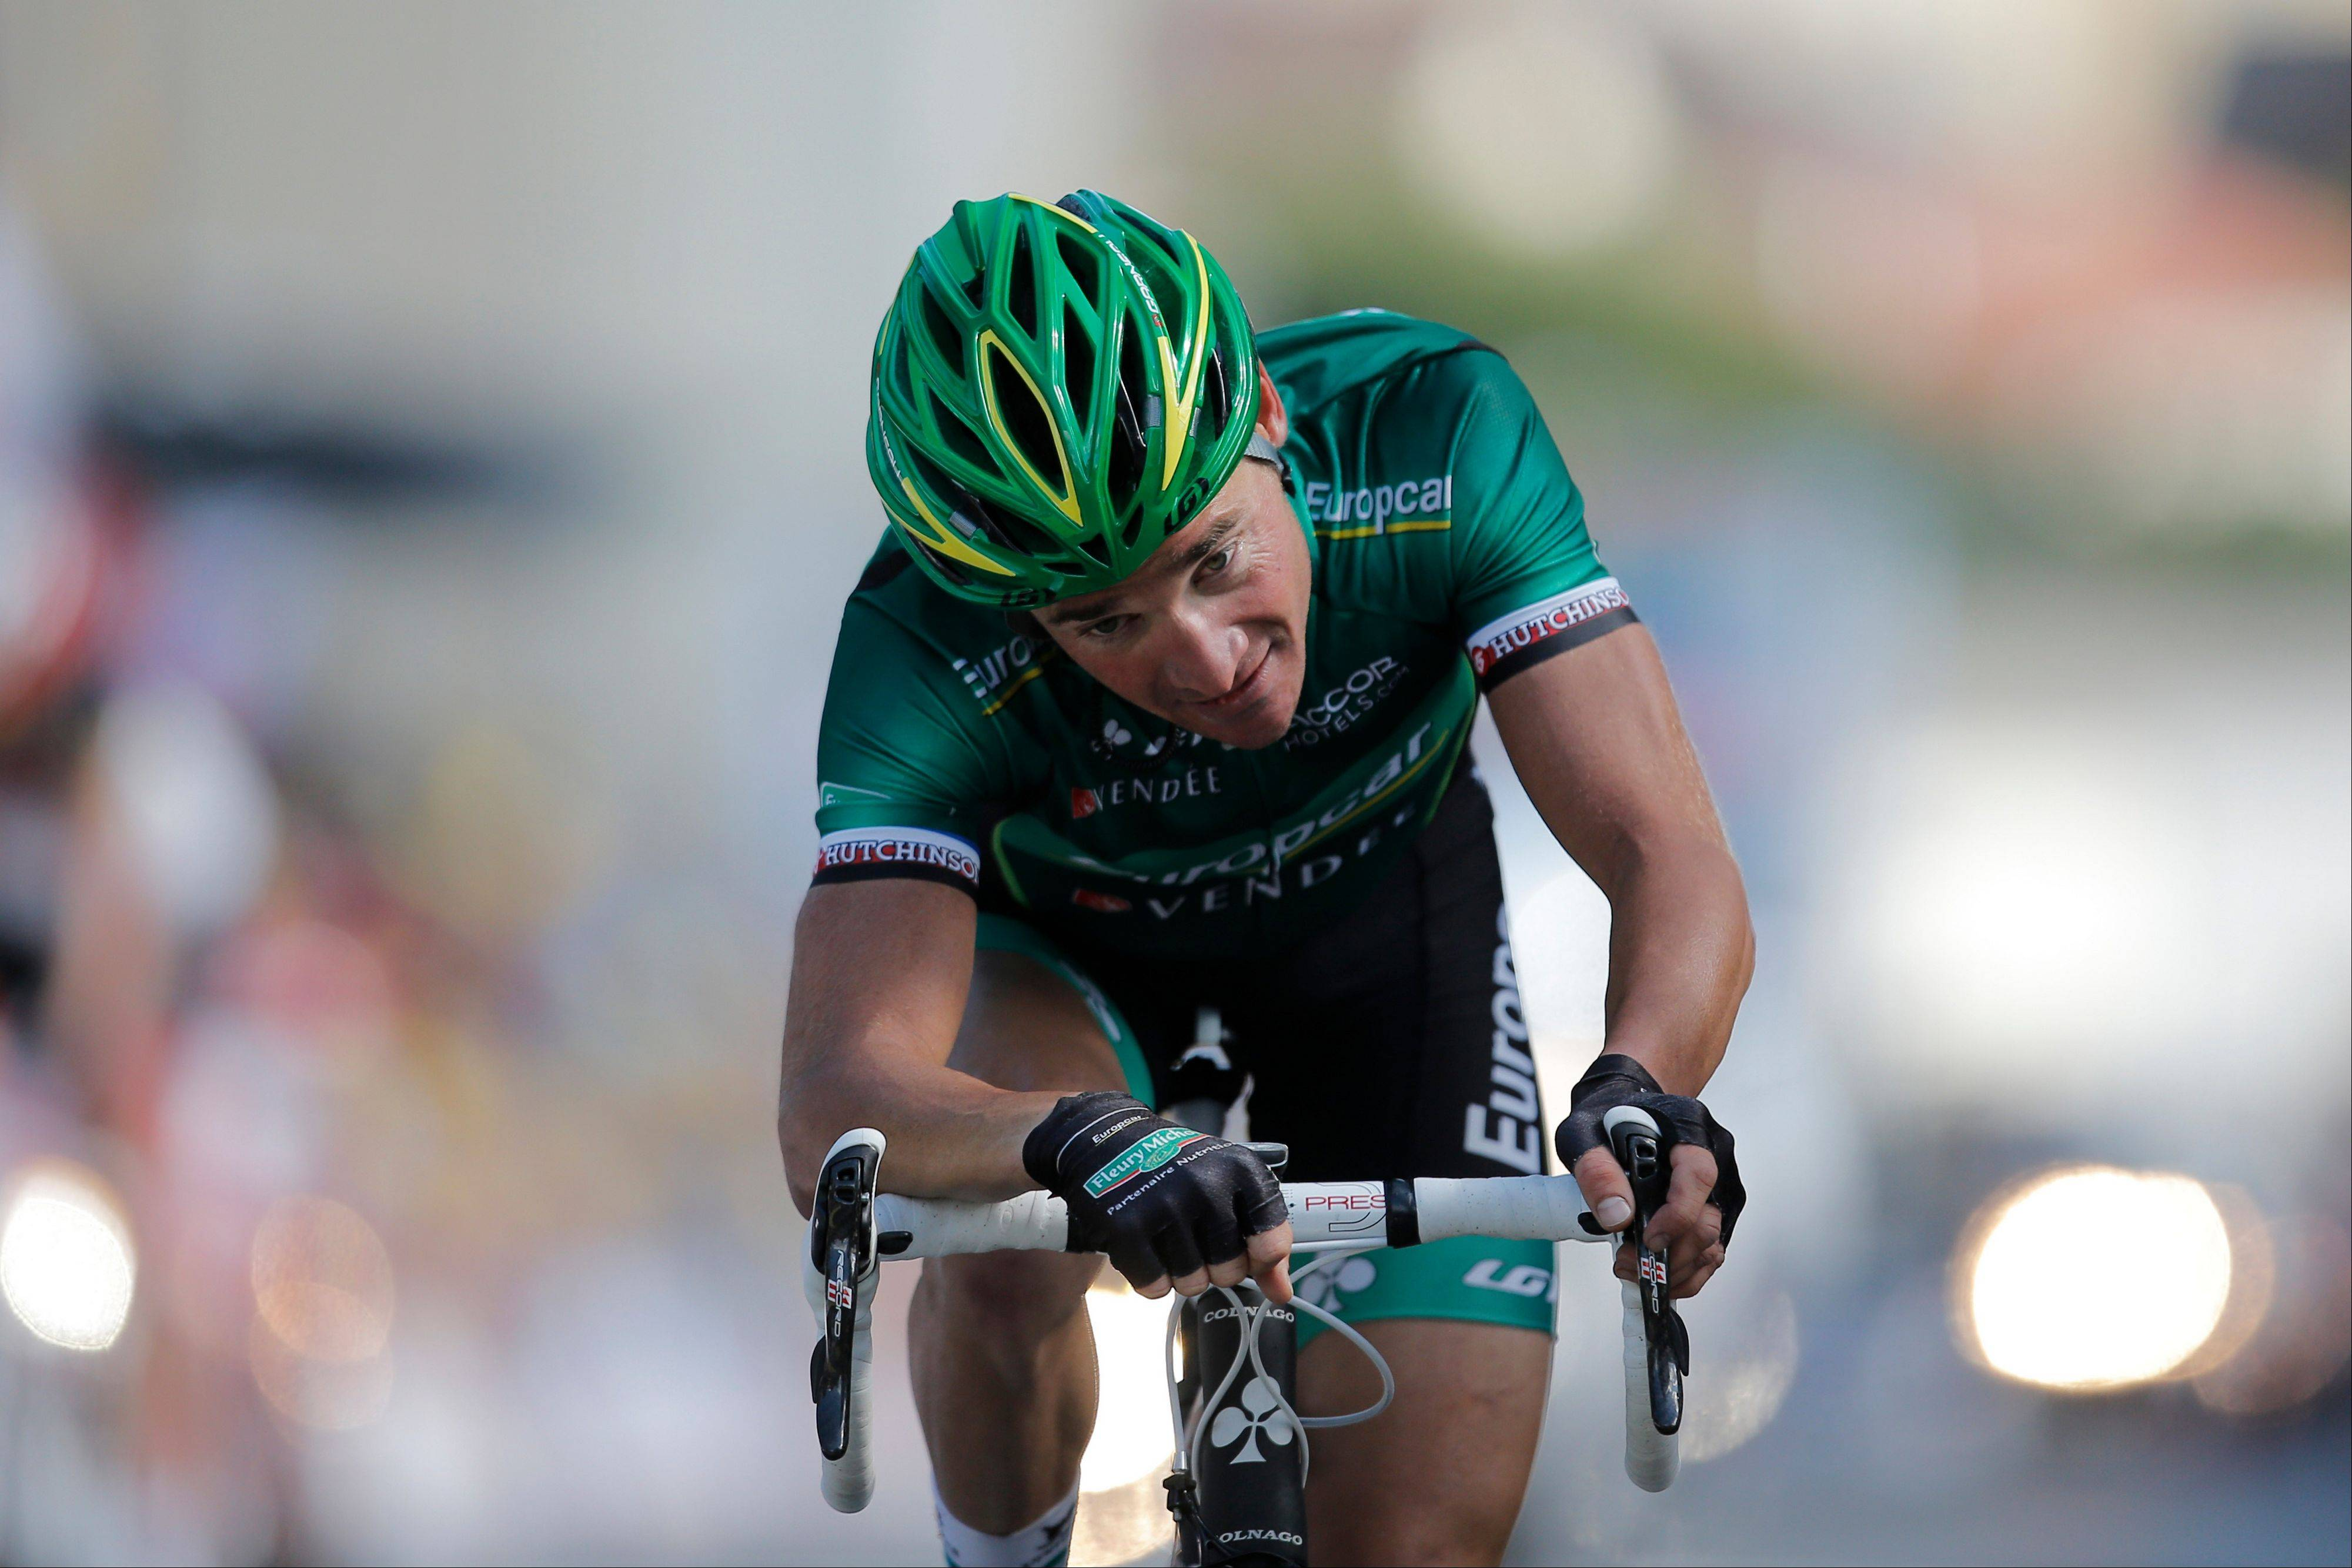 Thomas Voeckler crosses the finish line Wednesday to win the 10th stage of the Tour de France.